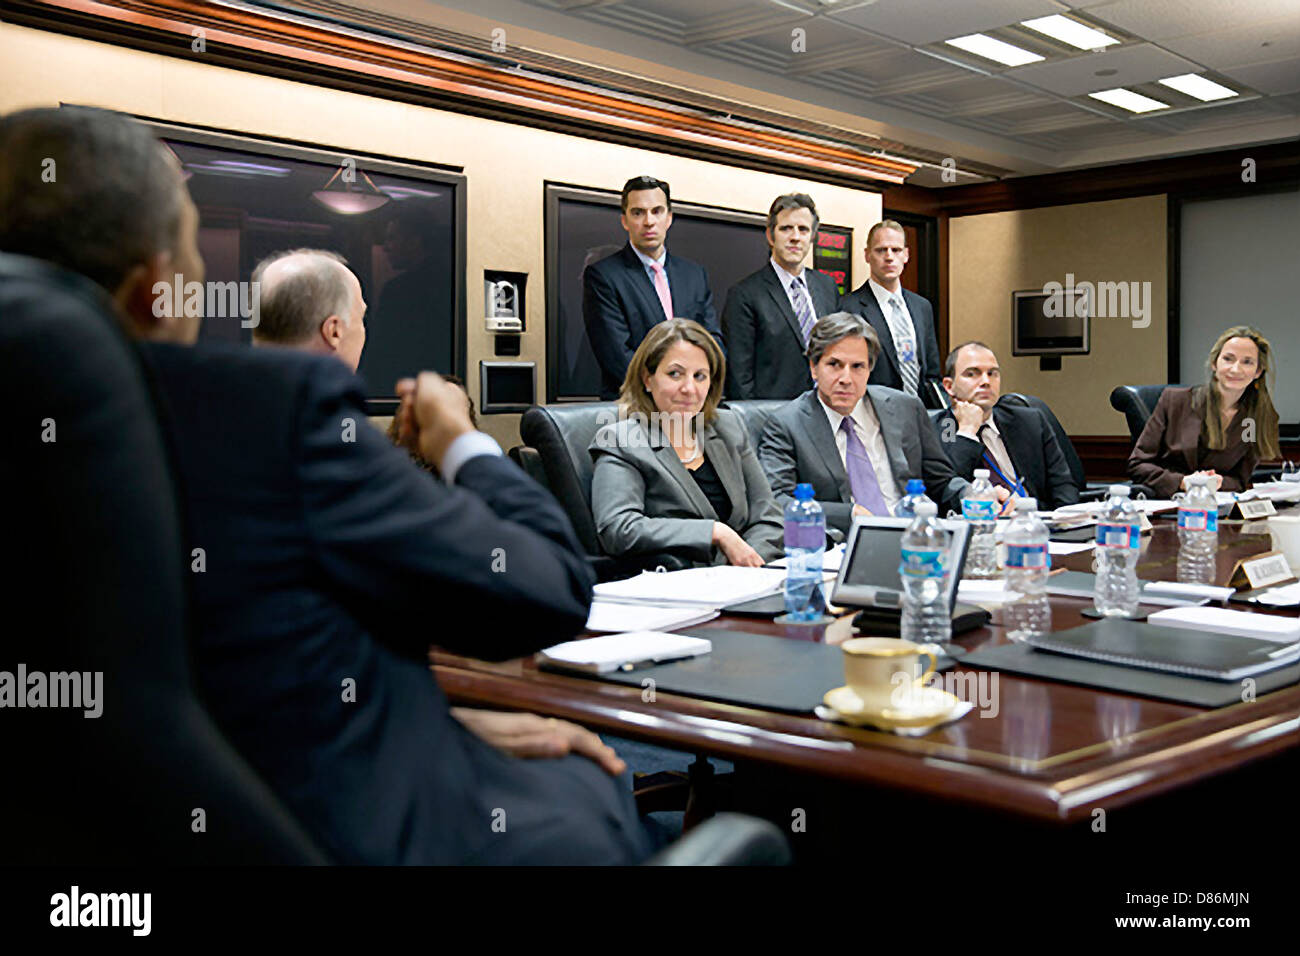 US President Barack Obama attends a meeting in the Situation Room of the White House April 2, 2013 in Washington, - Stock Image